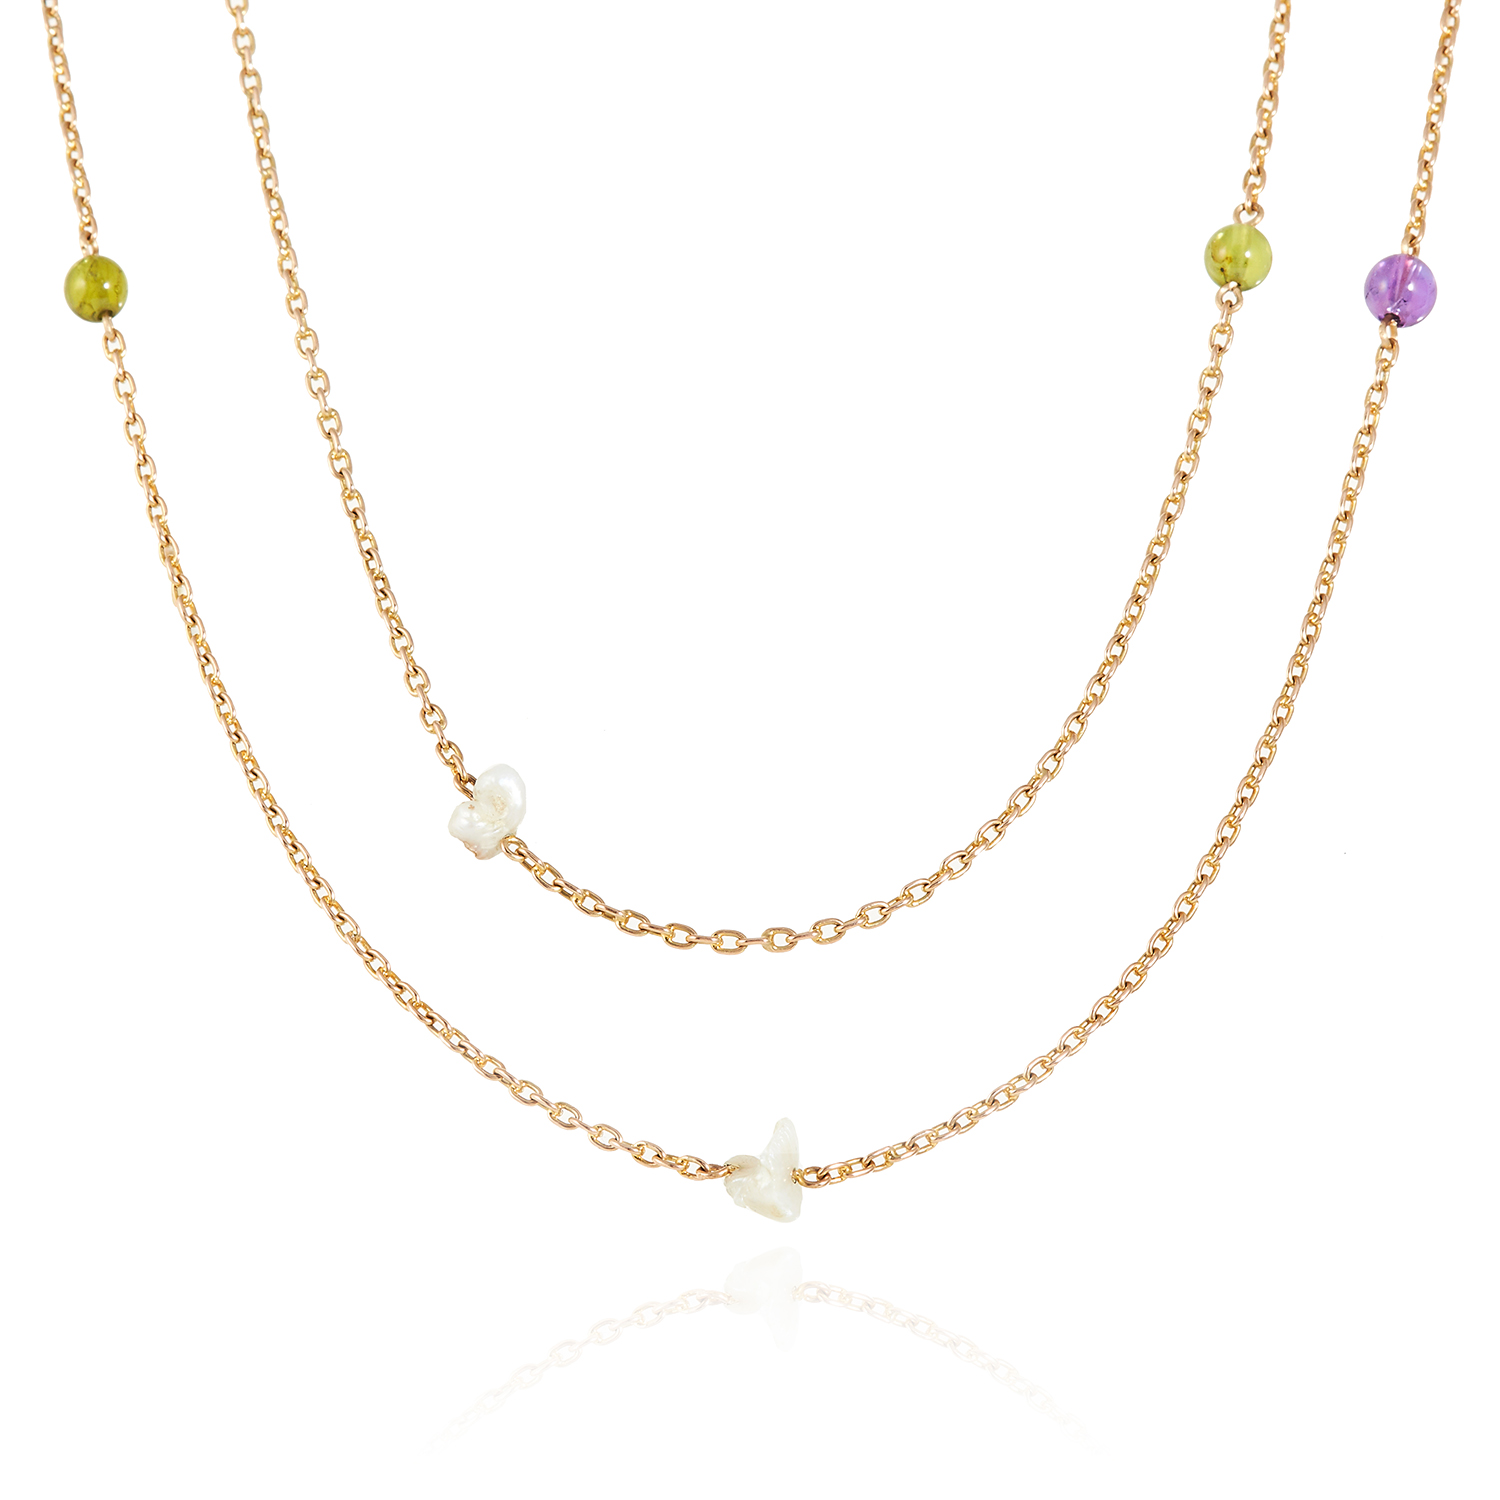 Los 12 - AN ANTIQUE NATURAL PEARL, PERIDOT AND AMETHYST SUFFRAGETTE SAUTOIR NECKLACE, EARLY 20TH CENTURY in